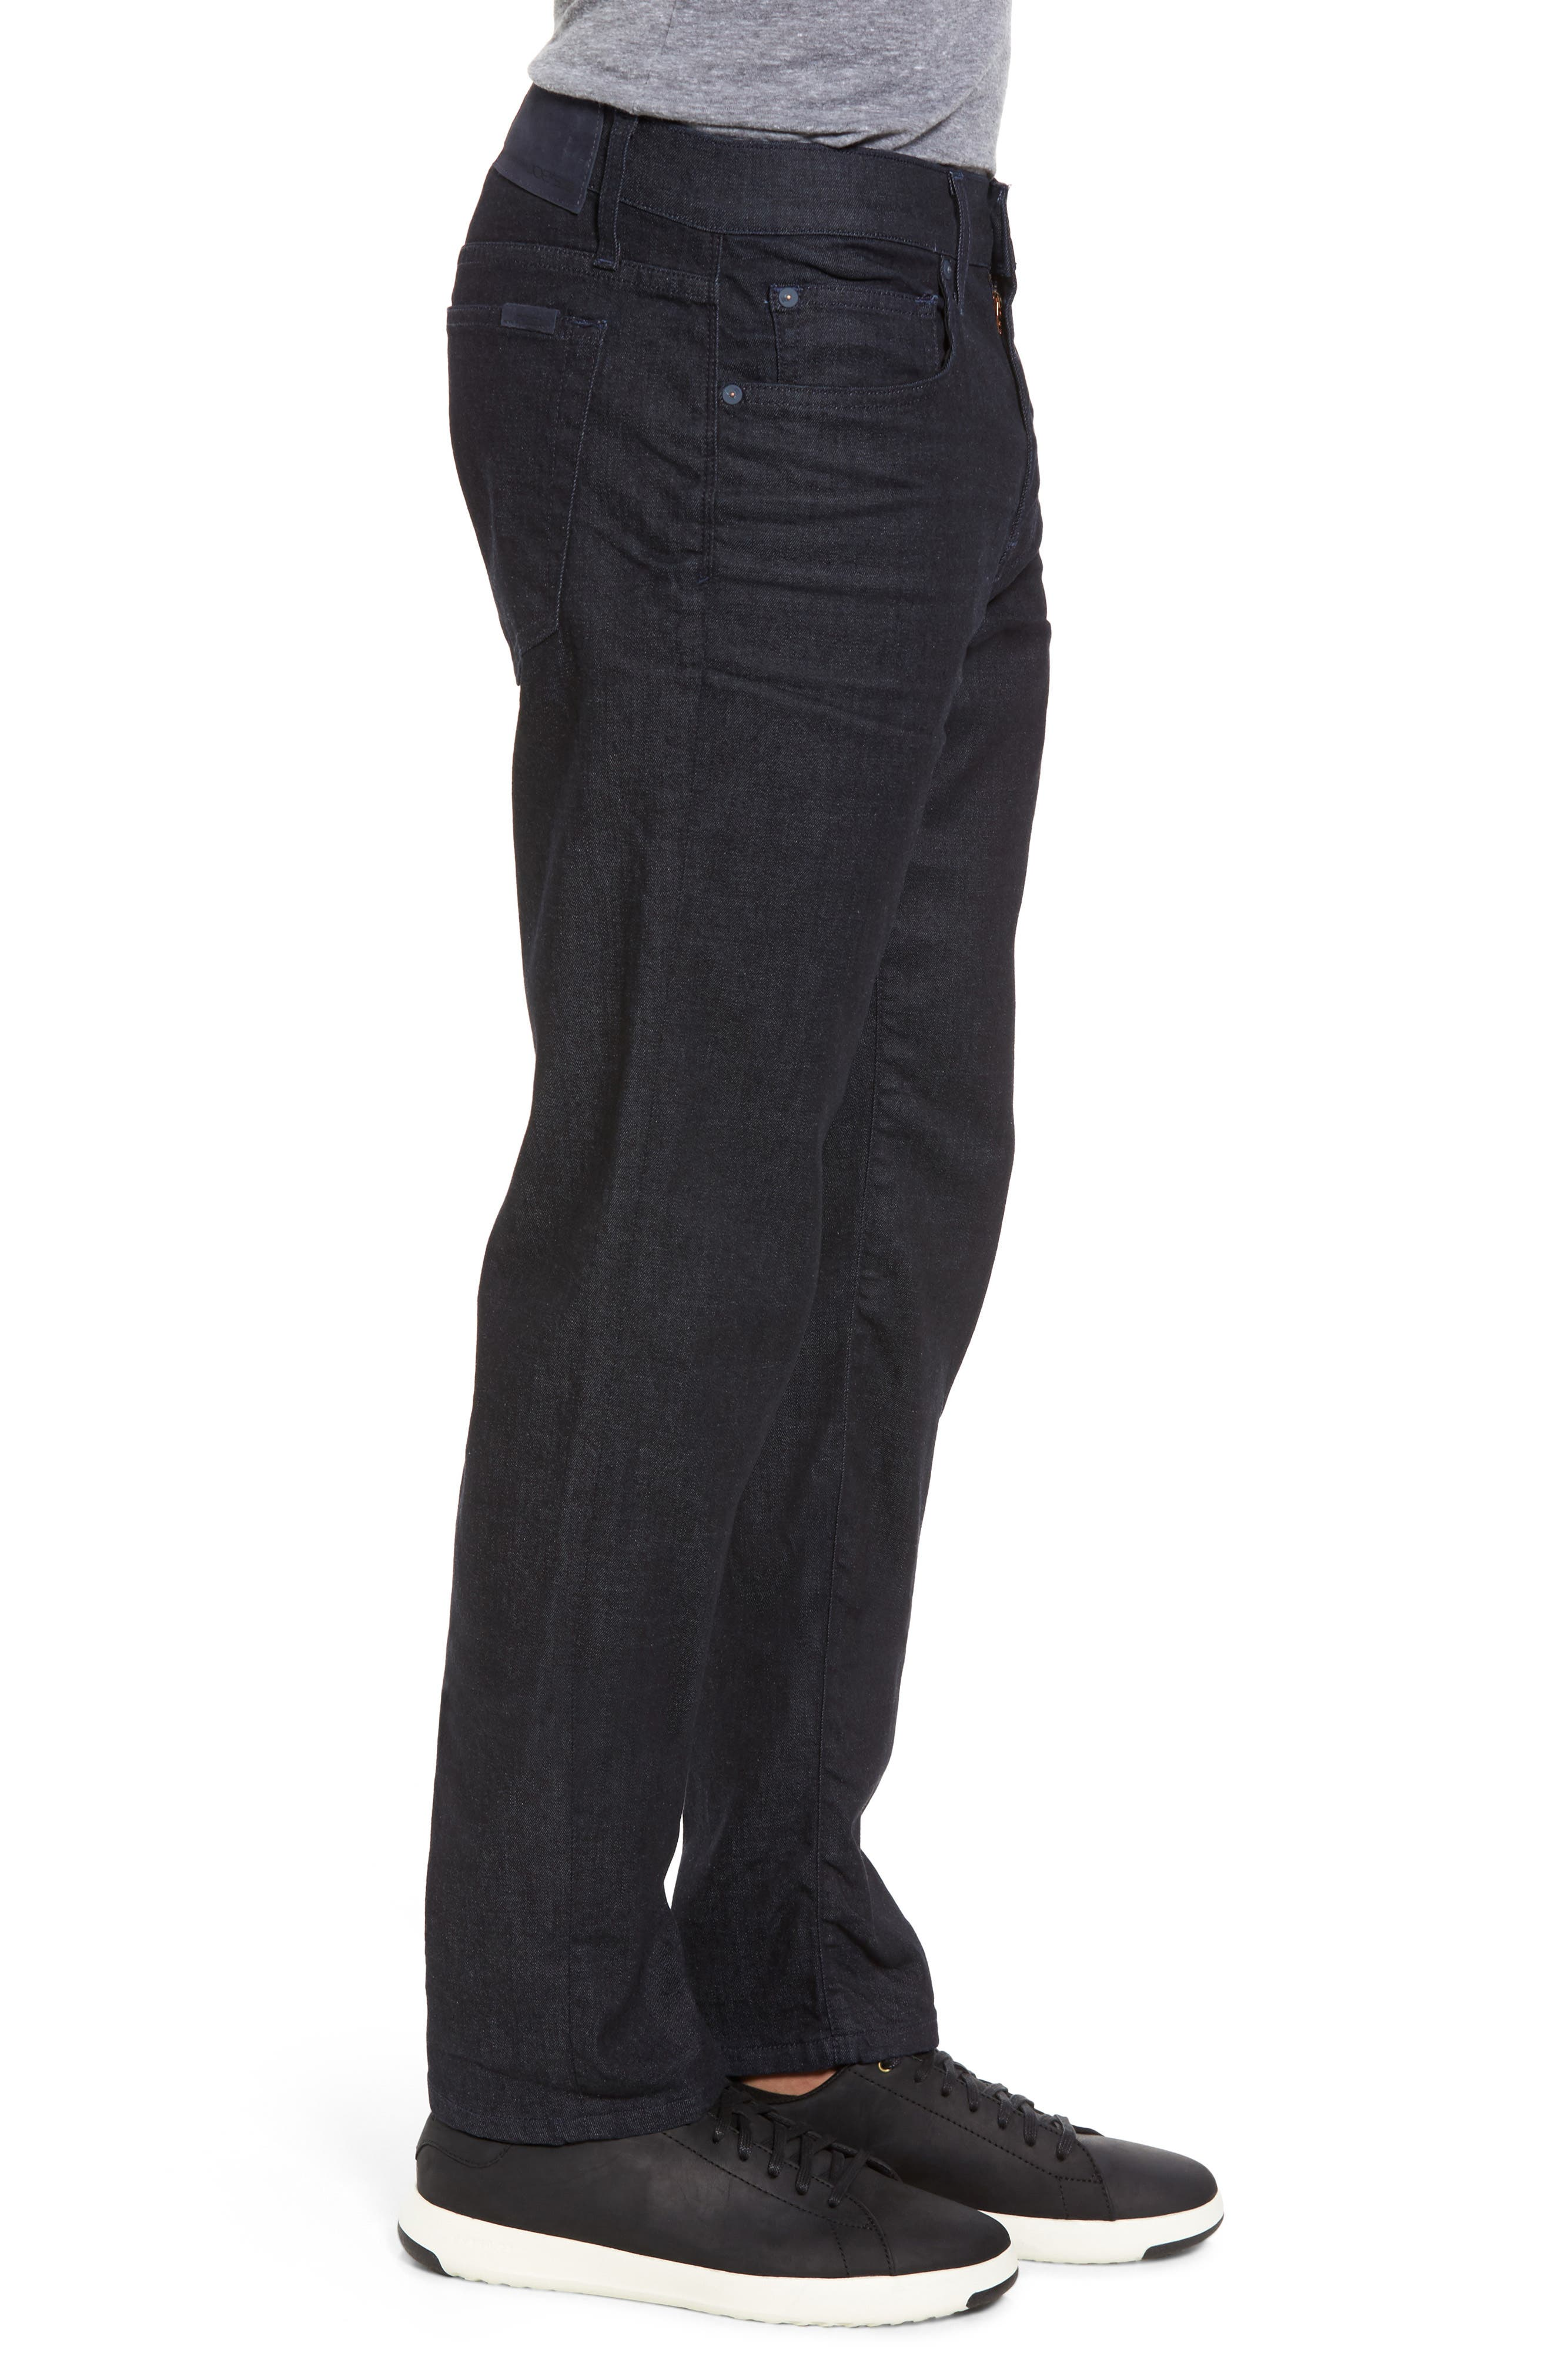 Brixton Slim Straight Fit Jeans,                             Alternate thumbnail 3, color,                             Foster